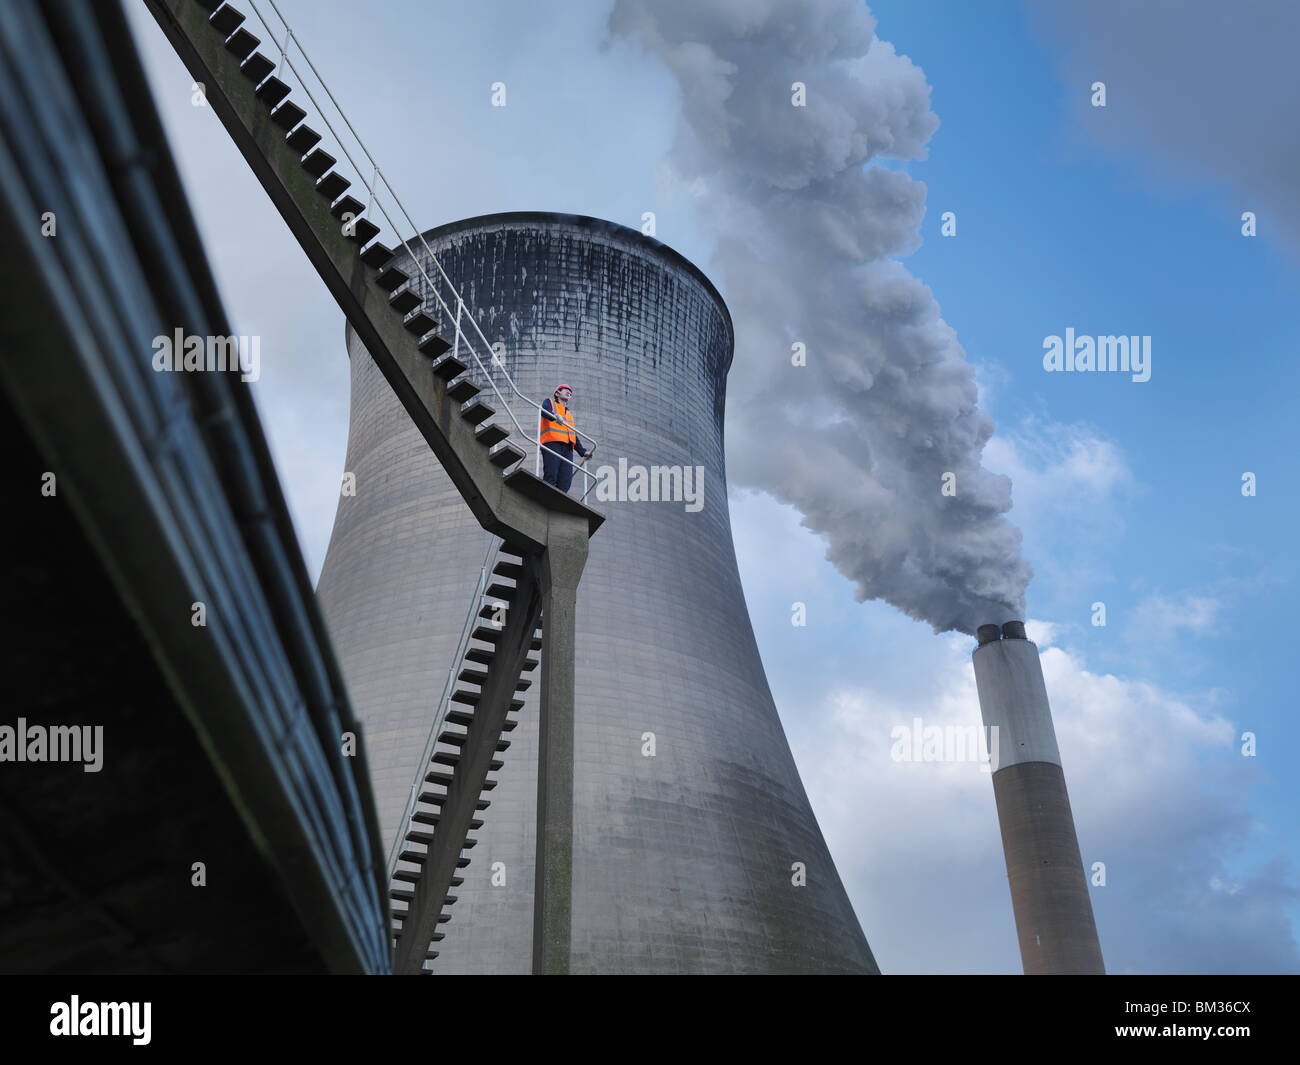 Worker At Coal Fired Power Station - Stock Image